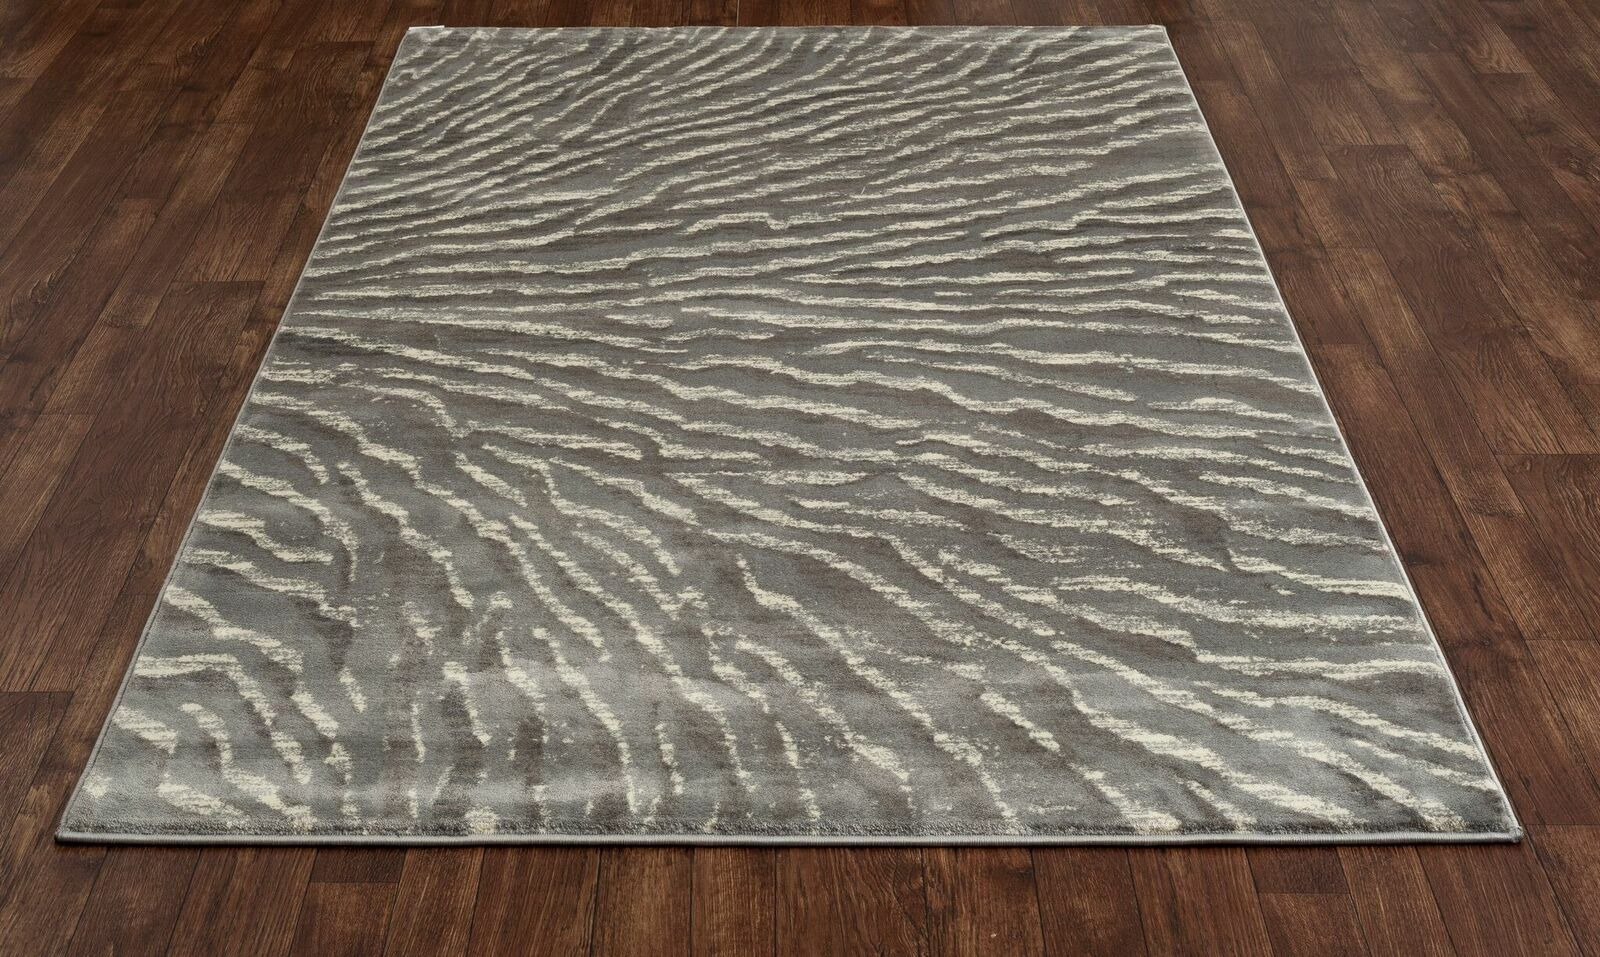 Cearley Gray Area Rug Rug Size: 3'11 x 5'7